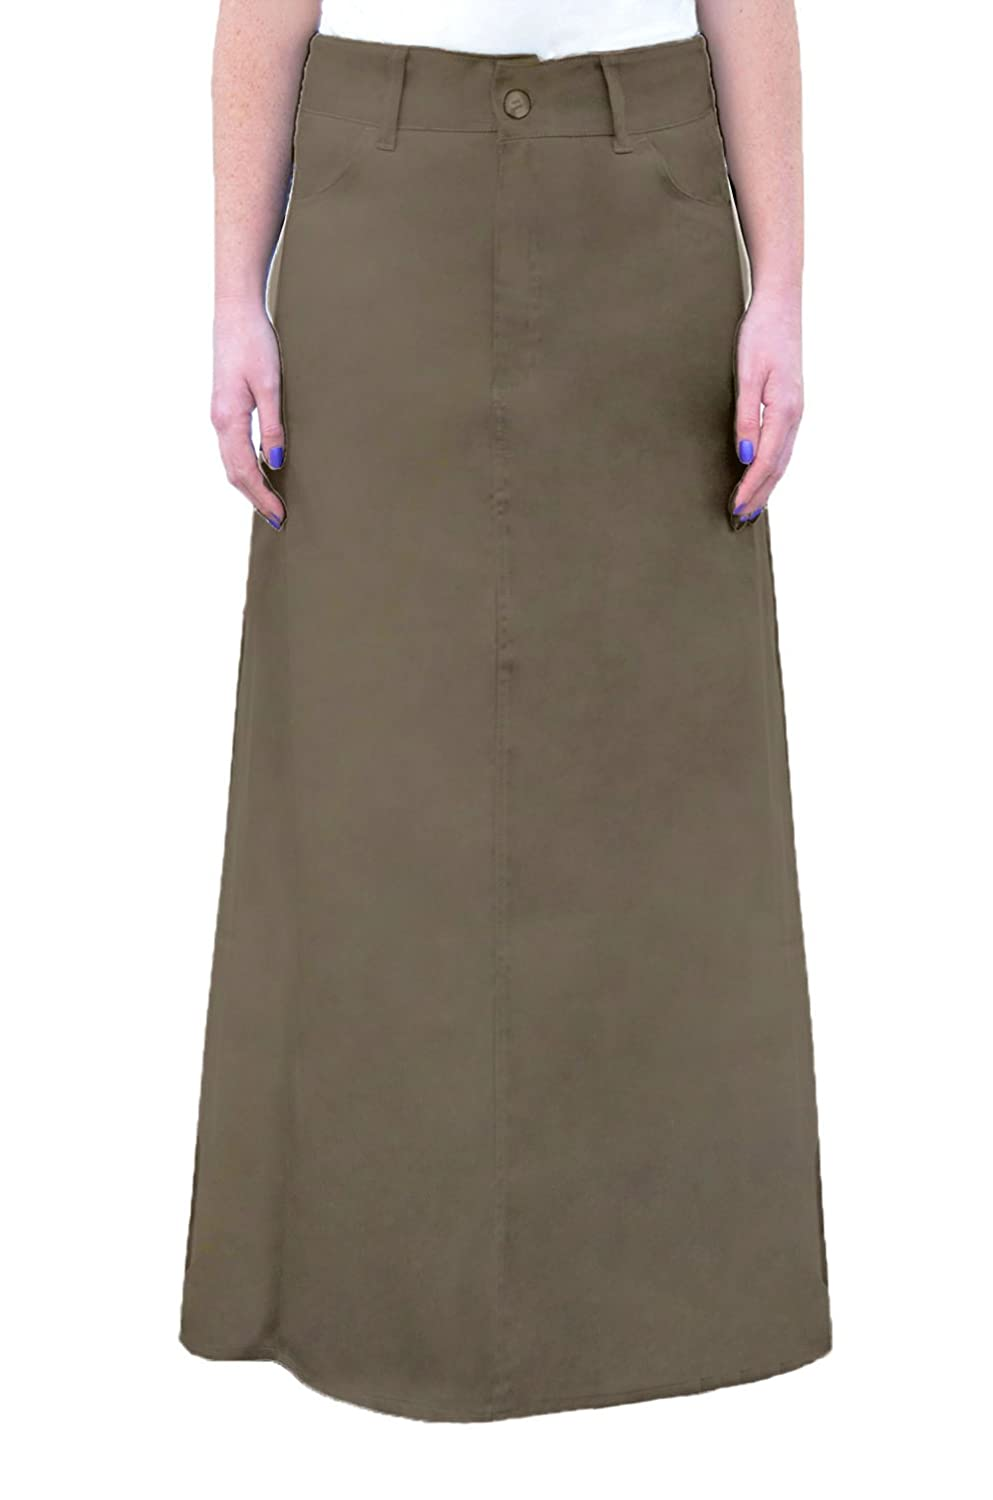 75f5ac0c4a Kosher Casual Women's A-Line Modest Long Cotton Light-Weight Twill Maxi  Skirt at Amazon Women's Clothing store: